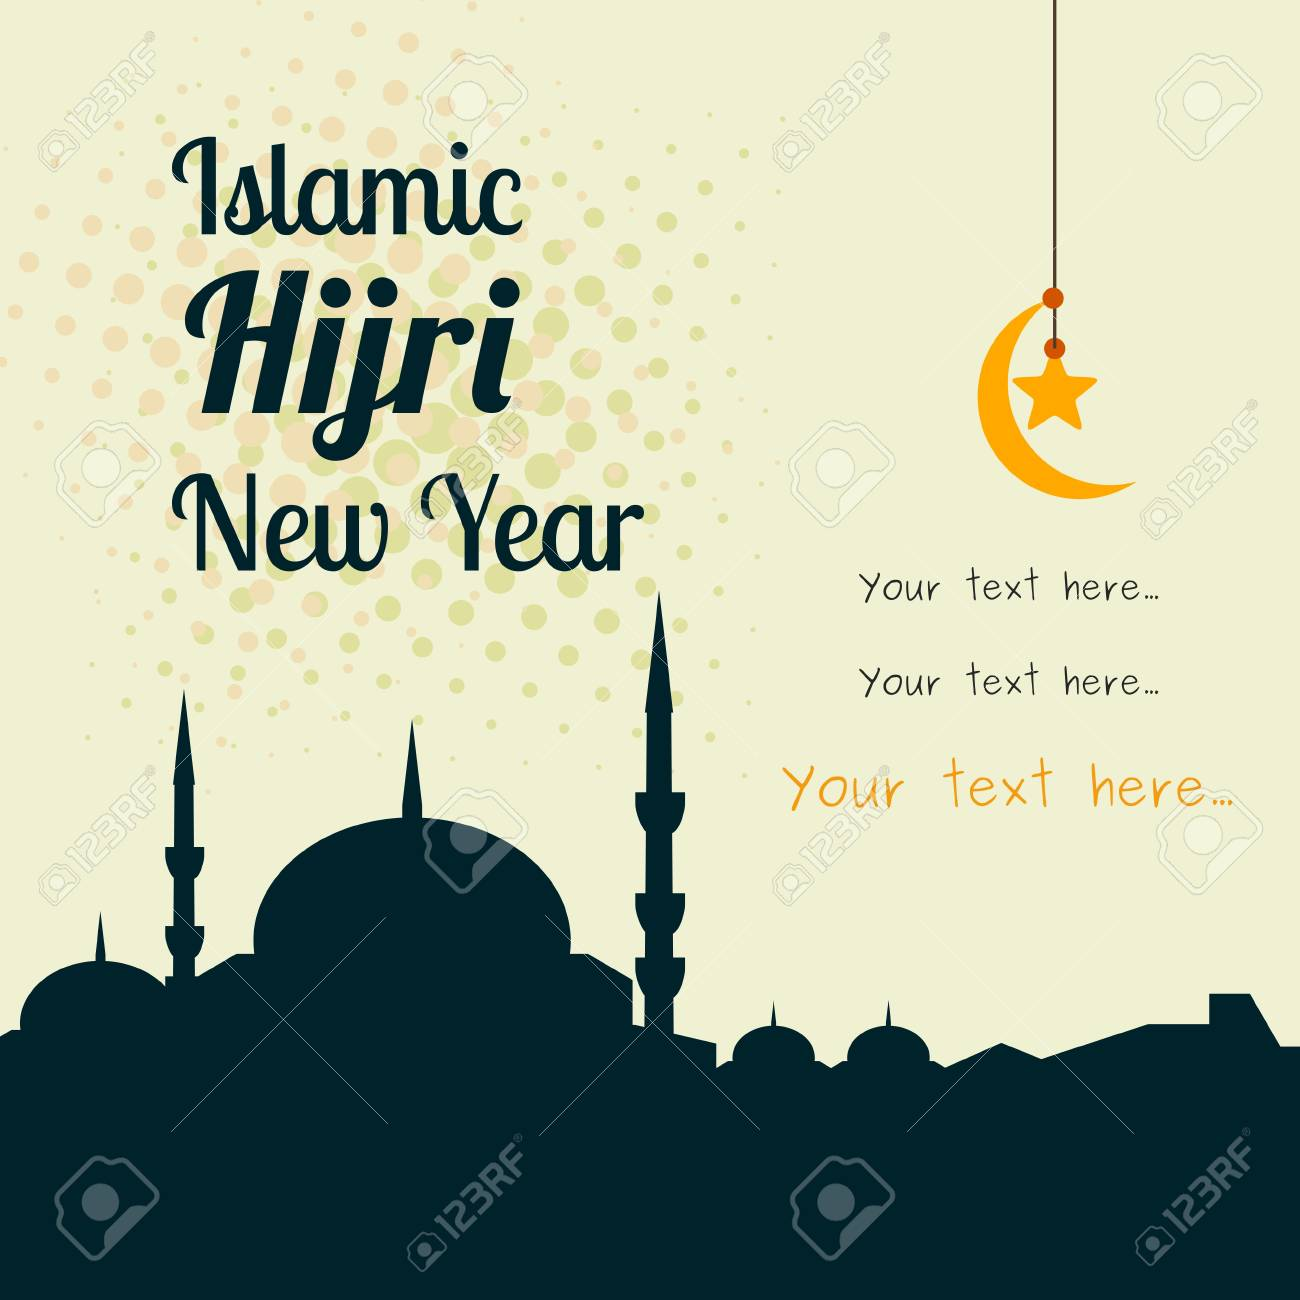 islamic hijri new year vector illustration for text background stock vector 85649012